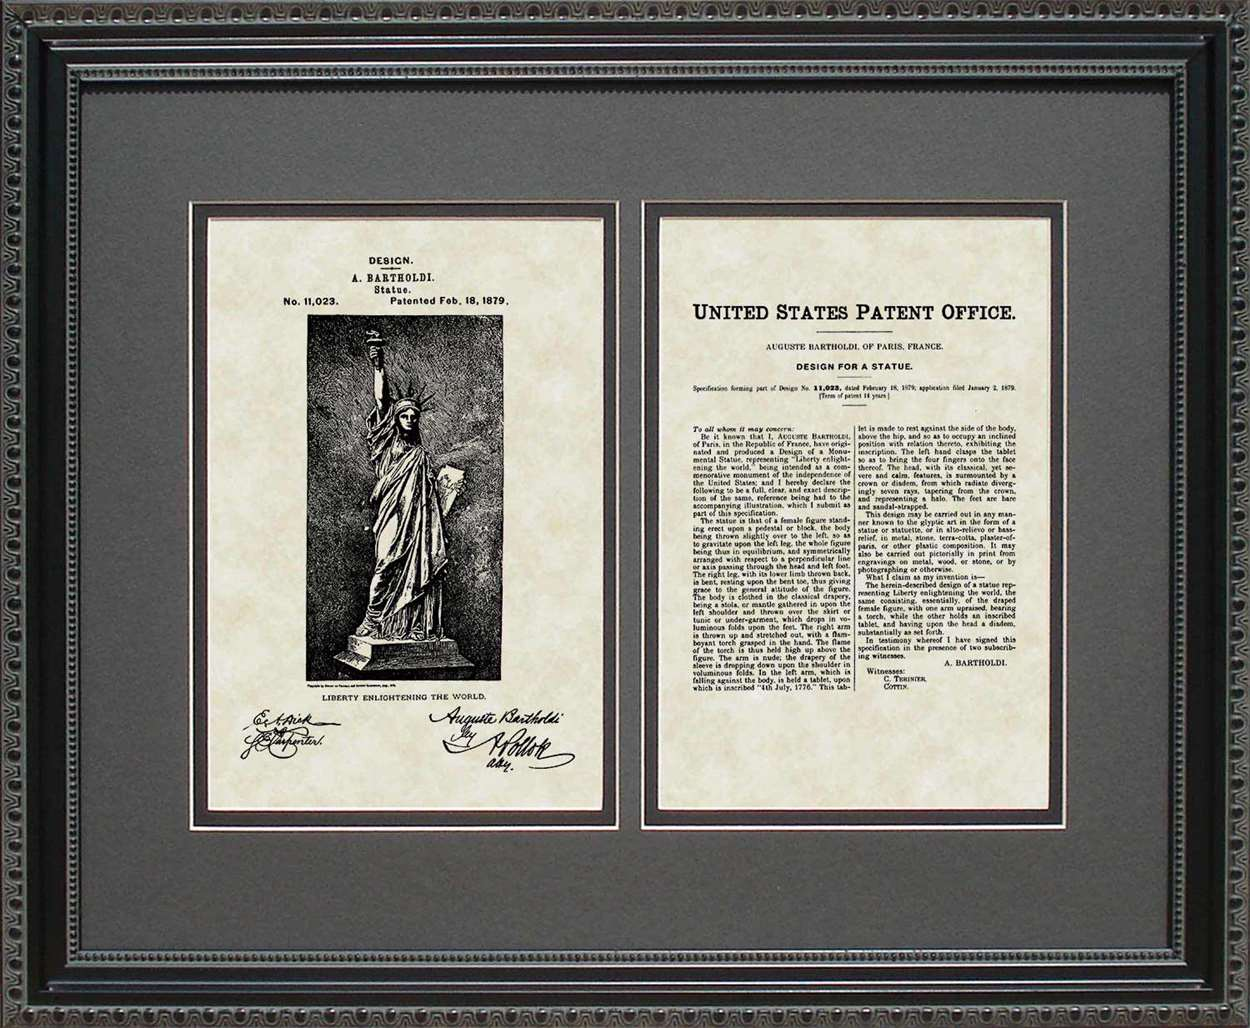 Statue of Liberty Patent, Art & Copy, Bartholdi, 1879, 16x20